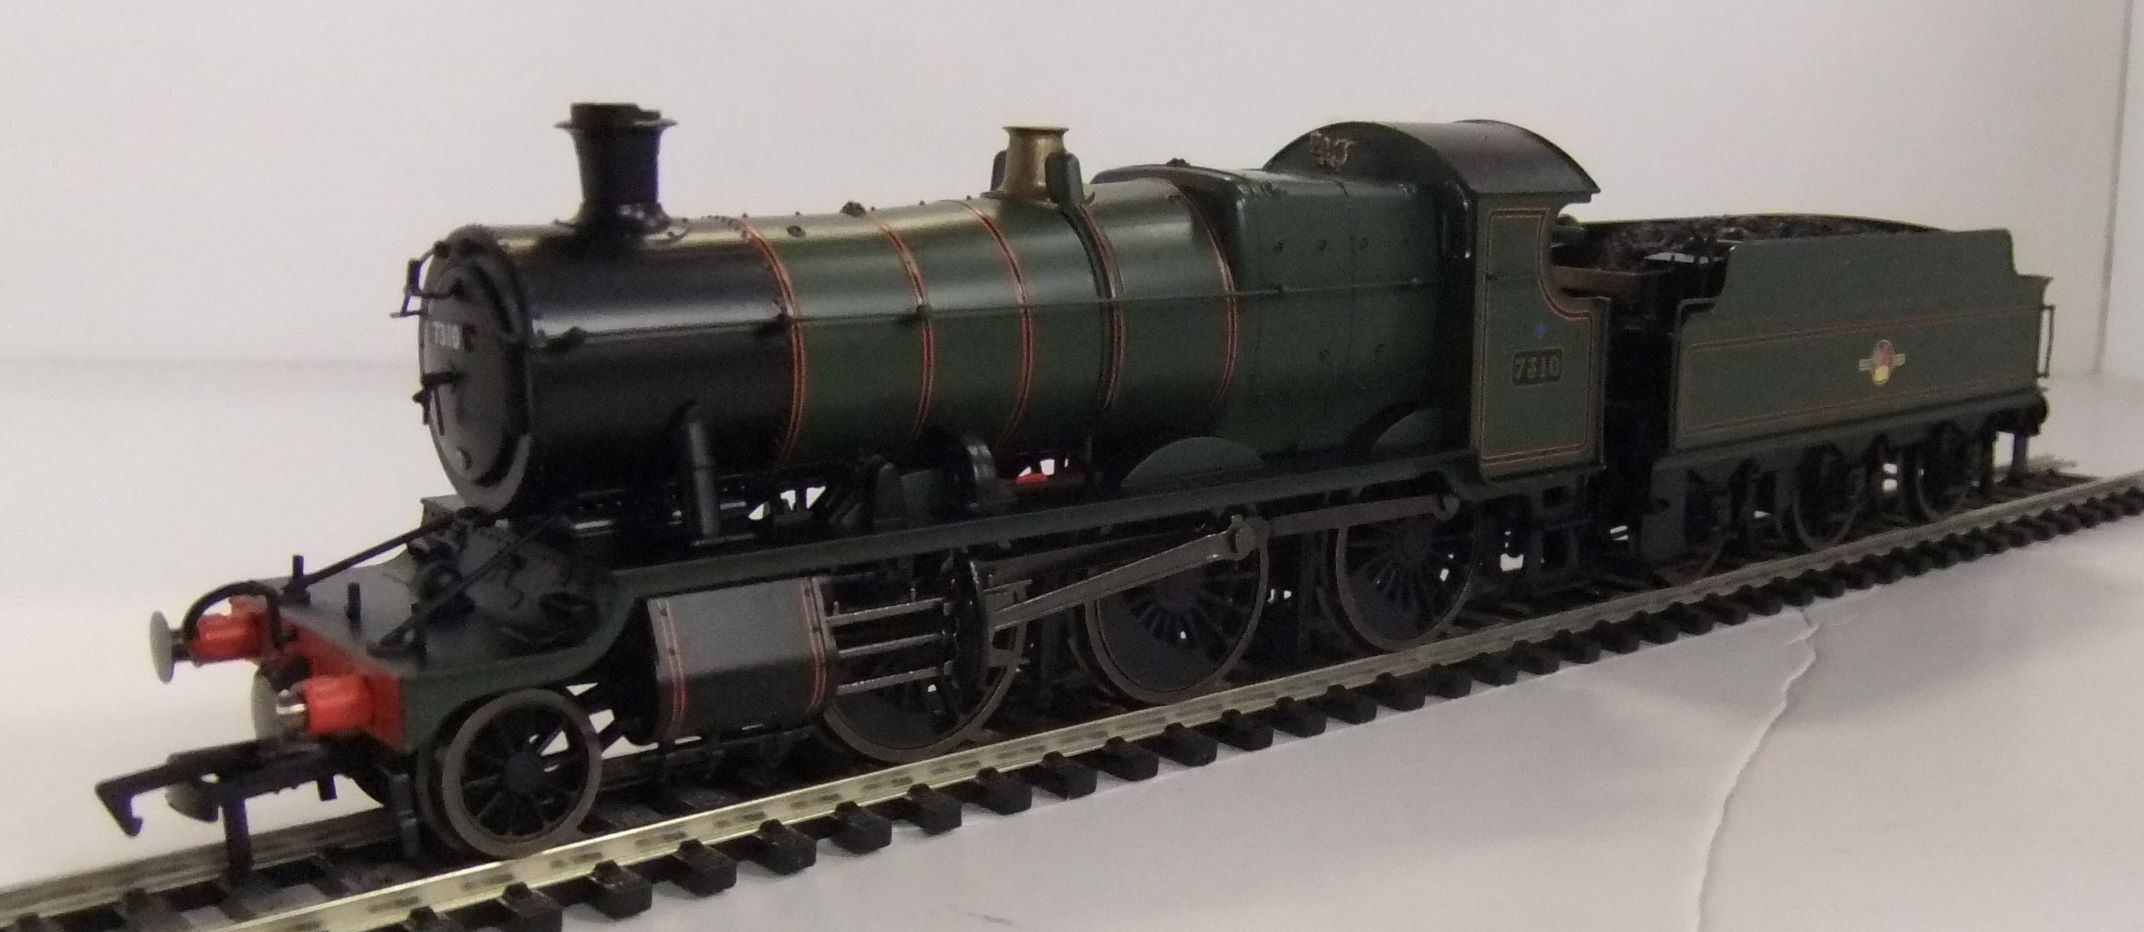 4S-043-006D BR Mogul no. 7310 Lined green late crest DCC fitted